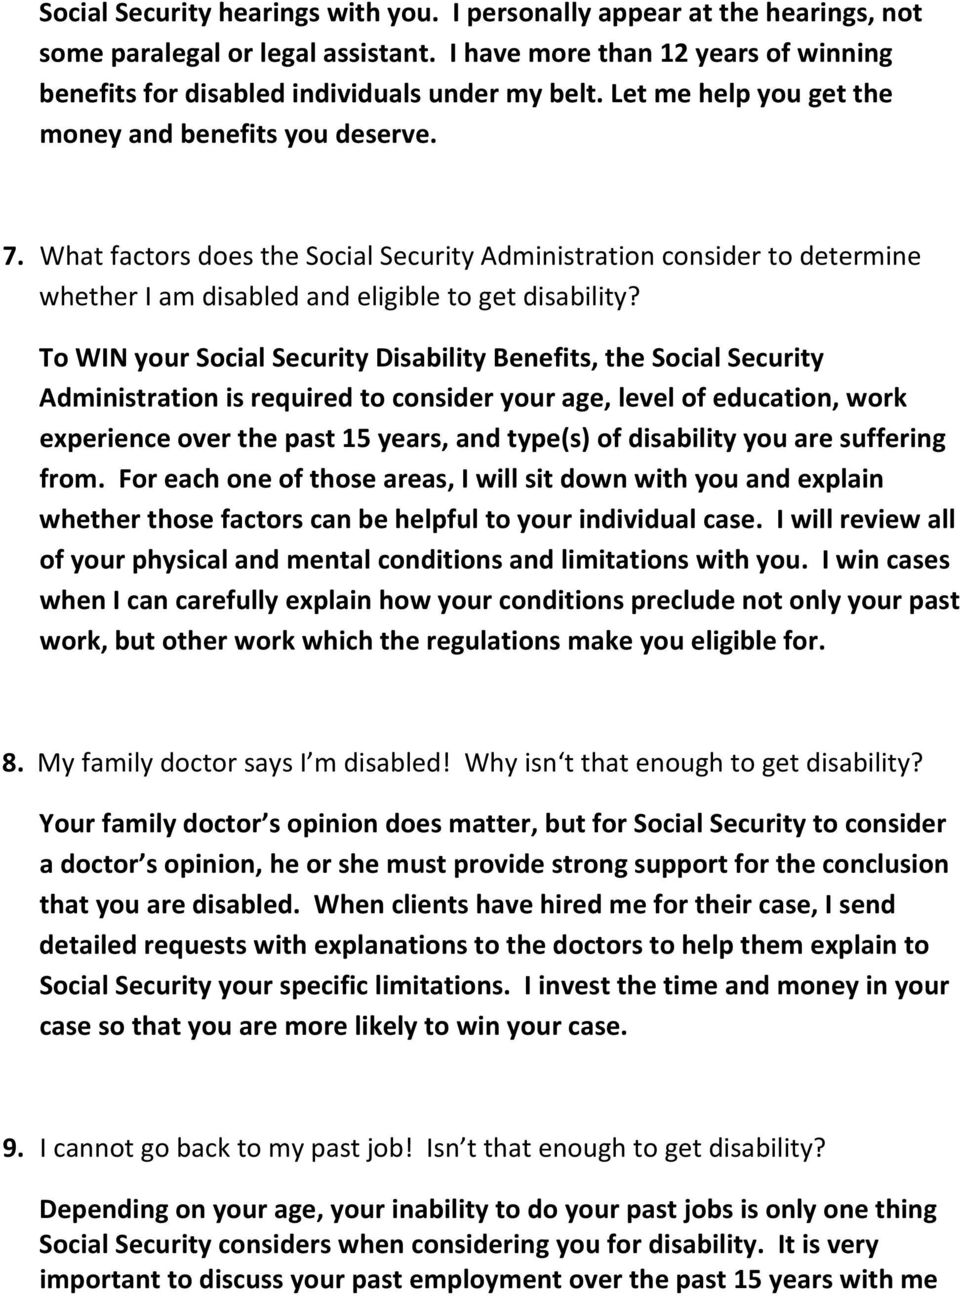 To WIN your Social Security Disability Benefits, the Social Security Administration is required to consider your age, level of education, work experience over the past 15 years, and type(s) of